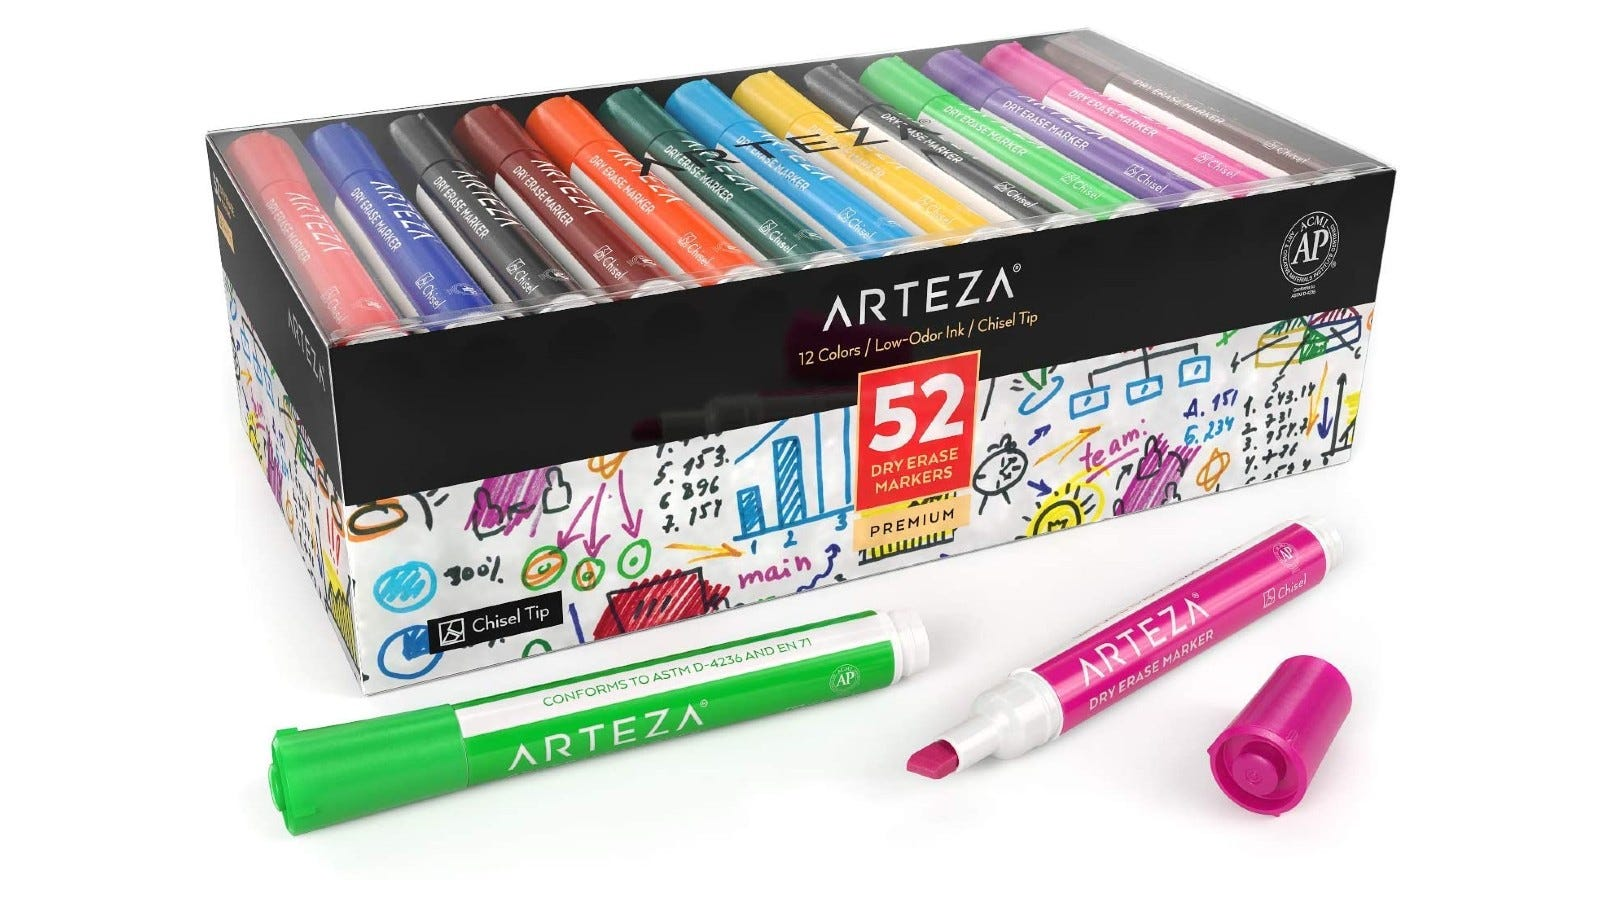 These dry erase markers come in many assorted colors